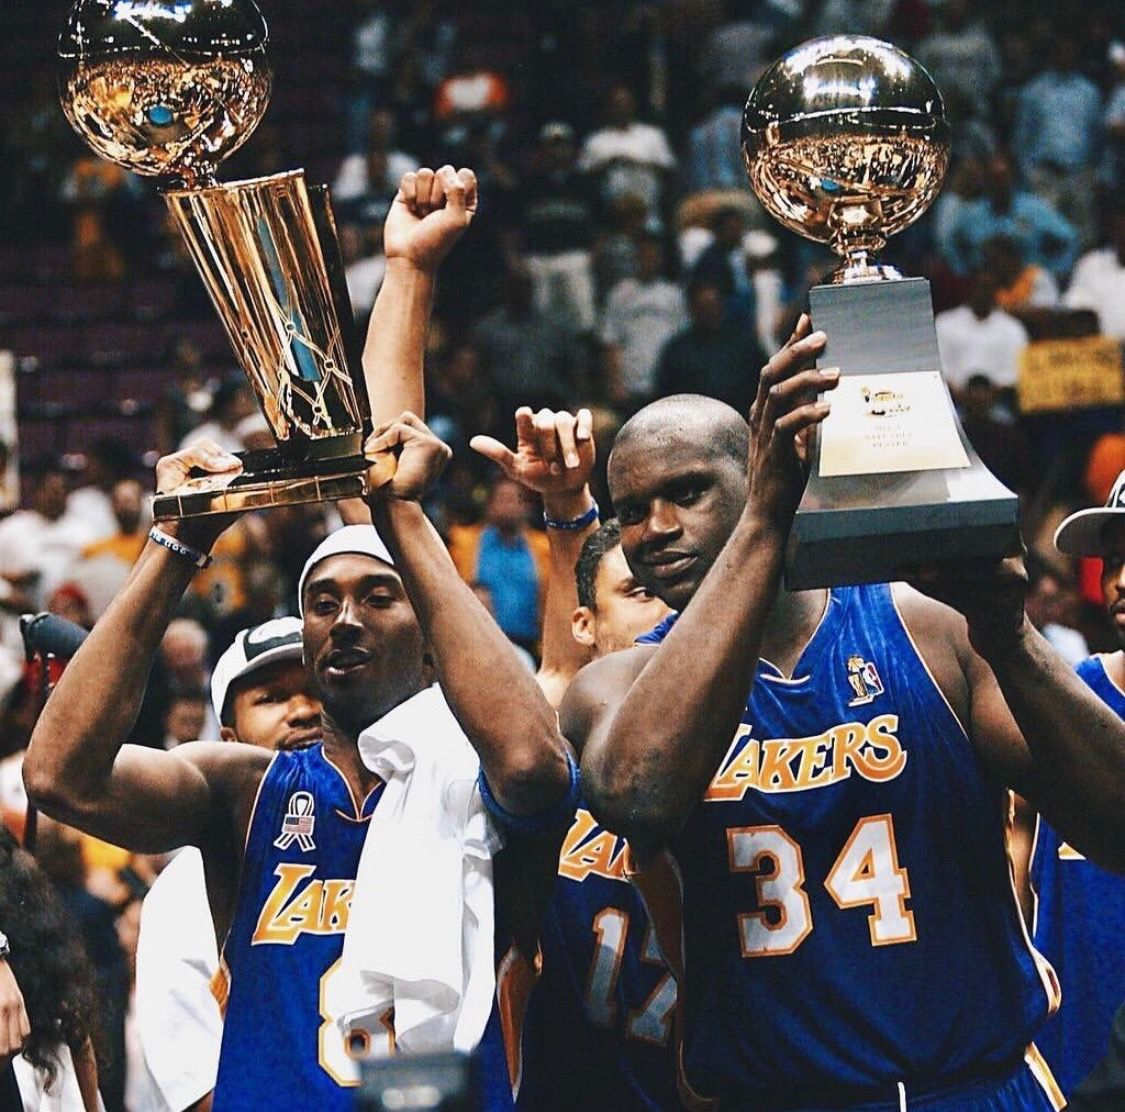 Pin by Mlouis on Basketball Shaquille o'neal, Shaq, kobe